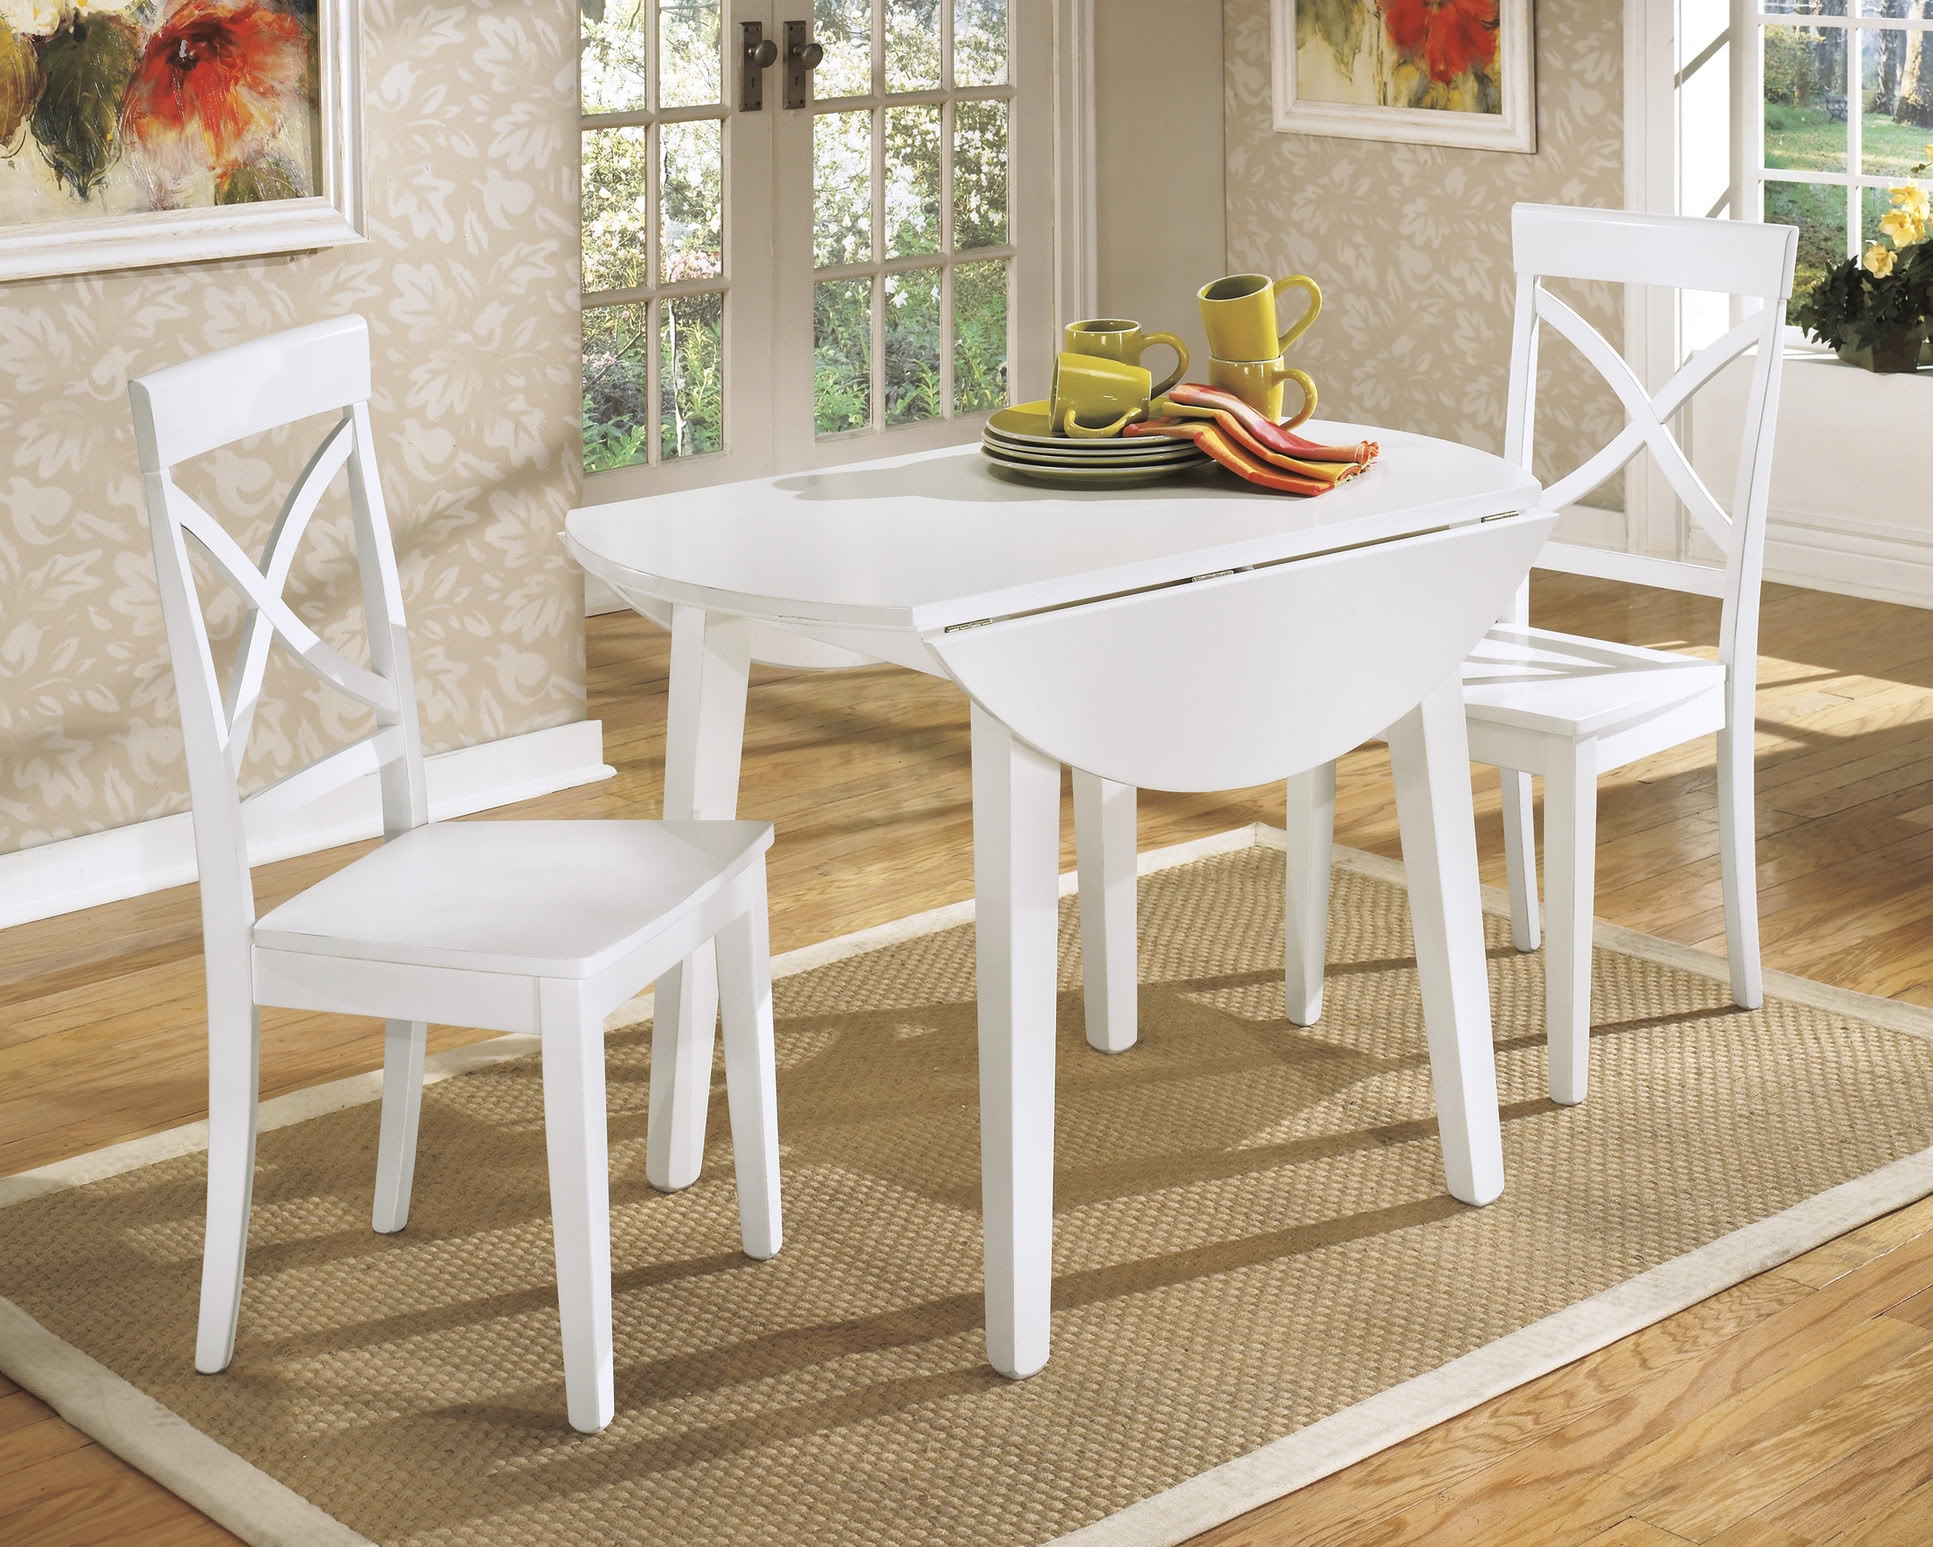 White round kitchen table and chairs design homesfeed for Table ikea blanche